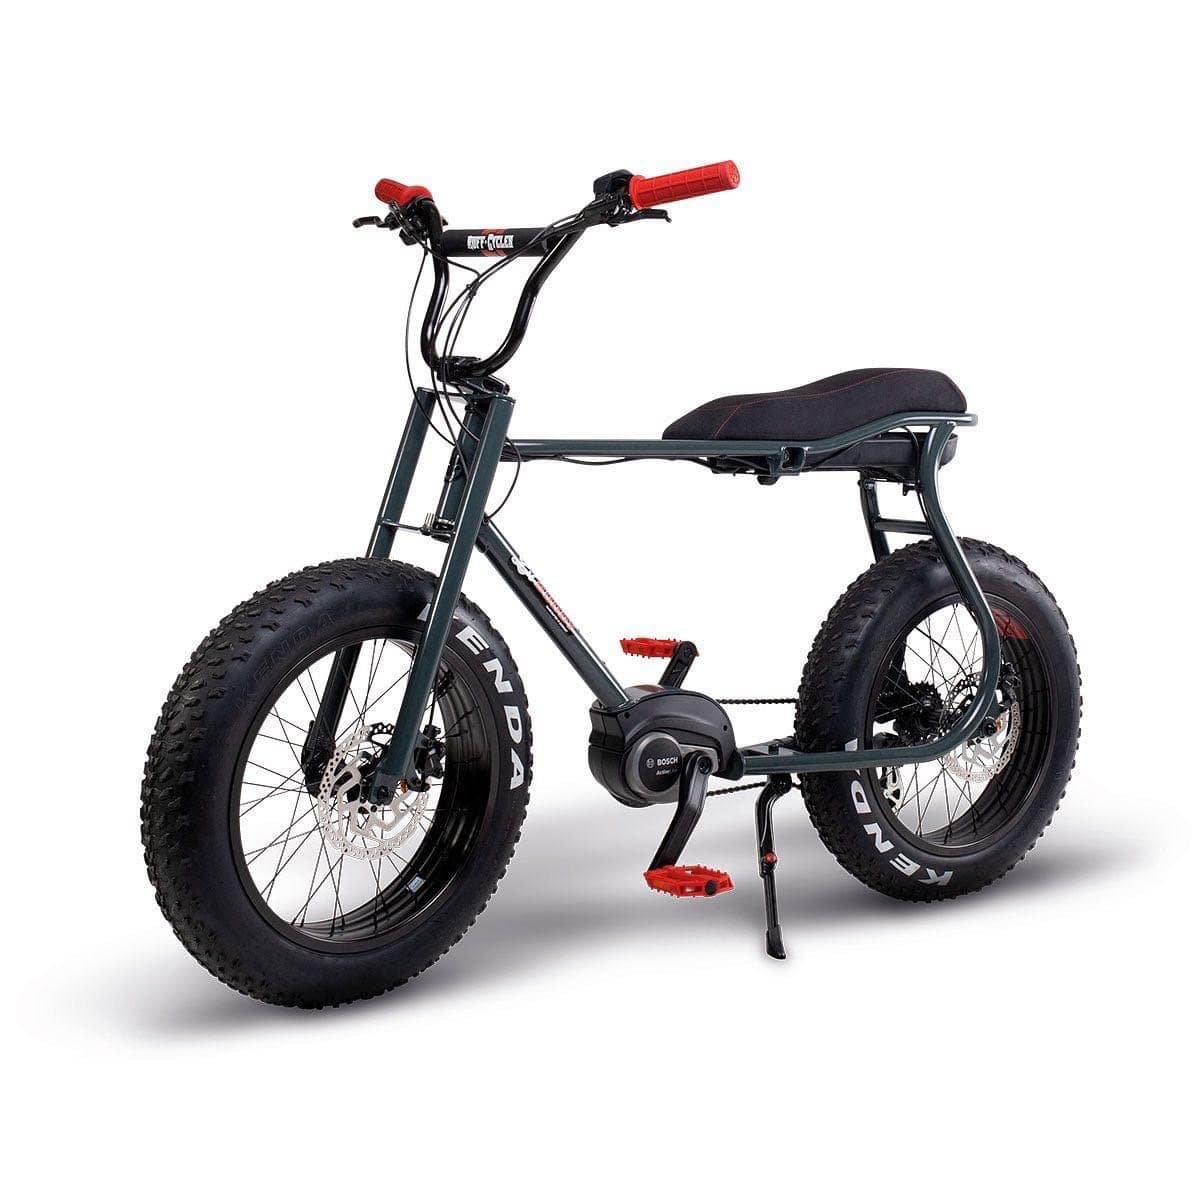 Ruff cycles - Lil' Buddy Electric Bike - Beyond PEV